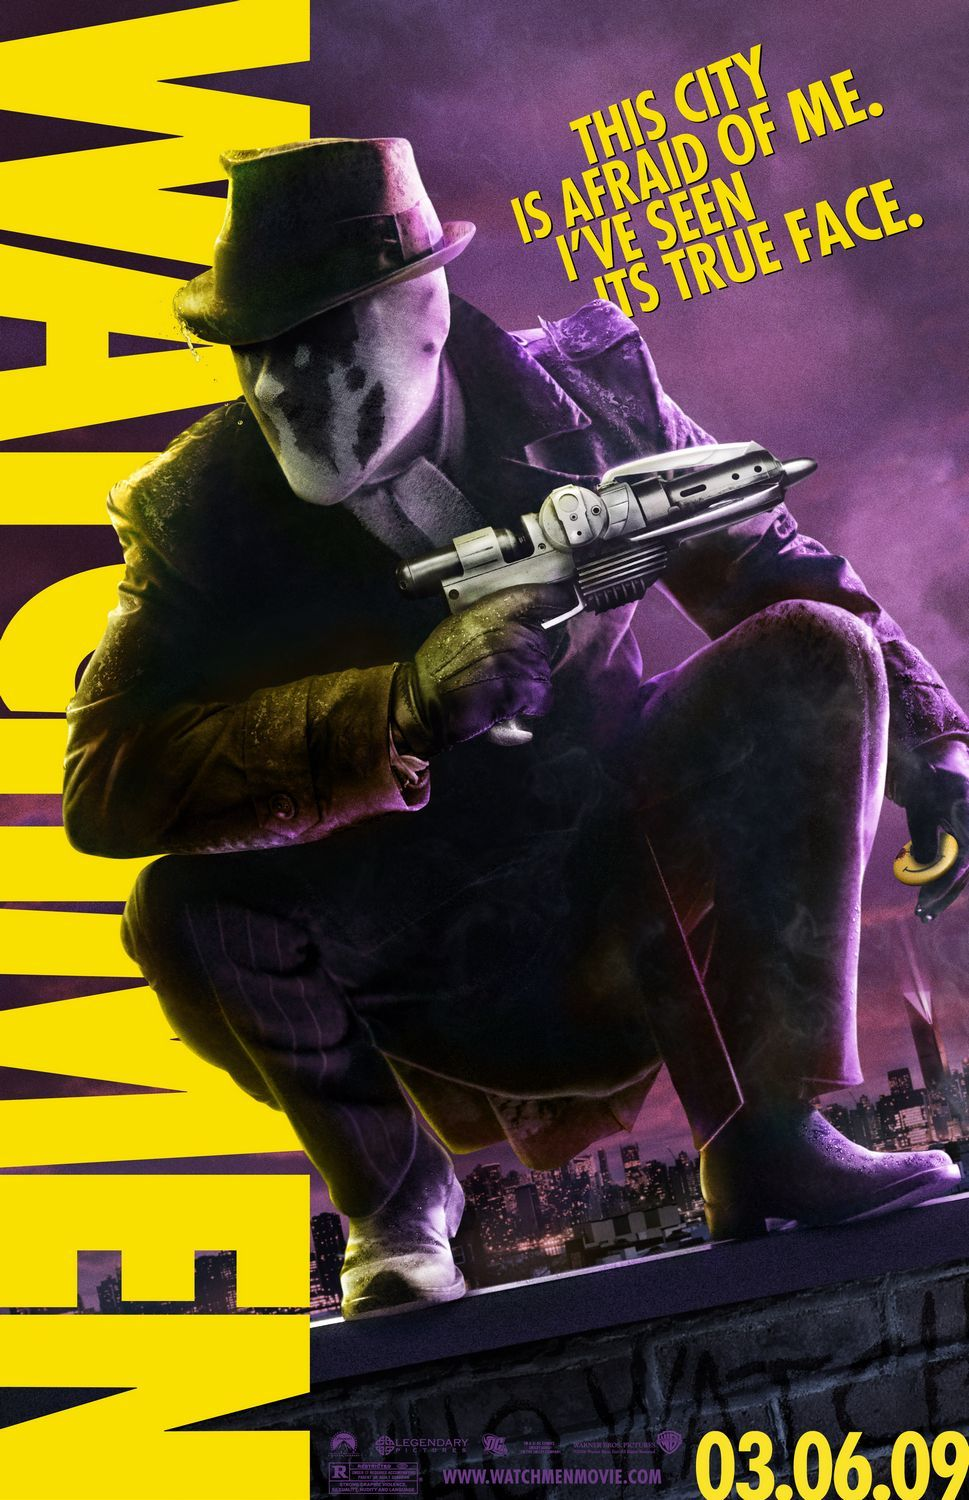 Return to the main poster page for Watchmen